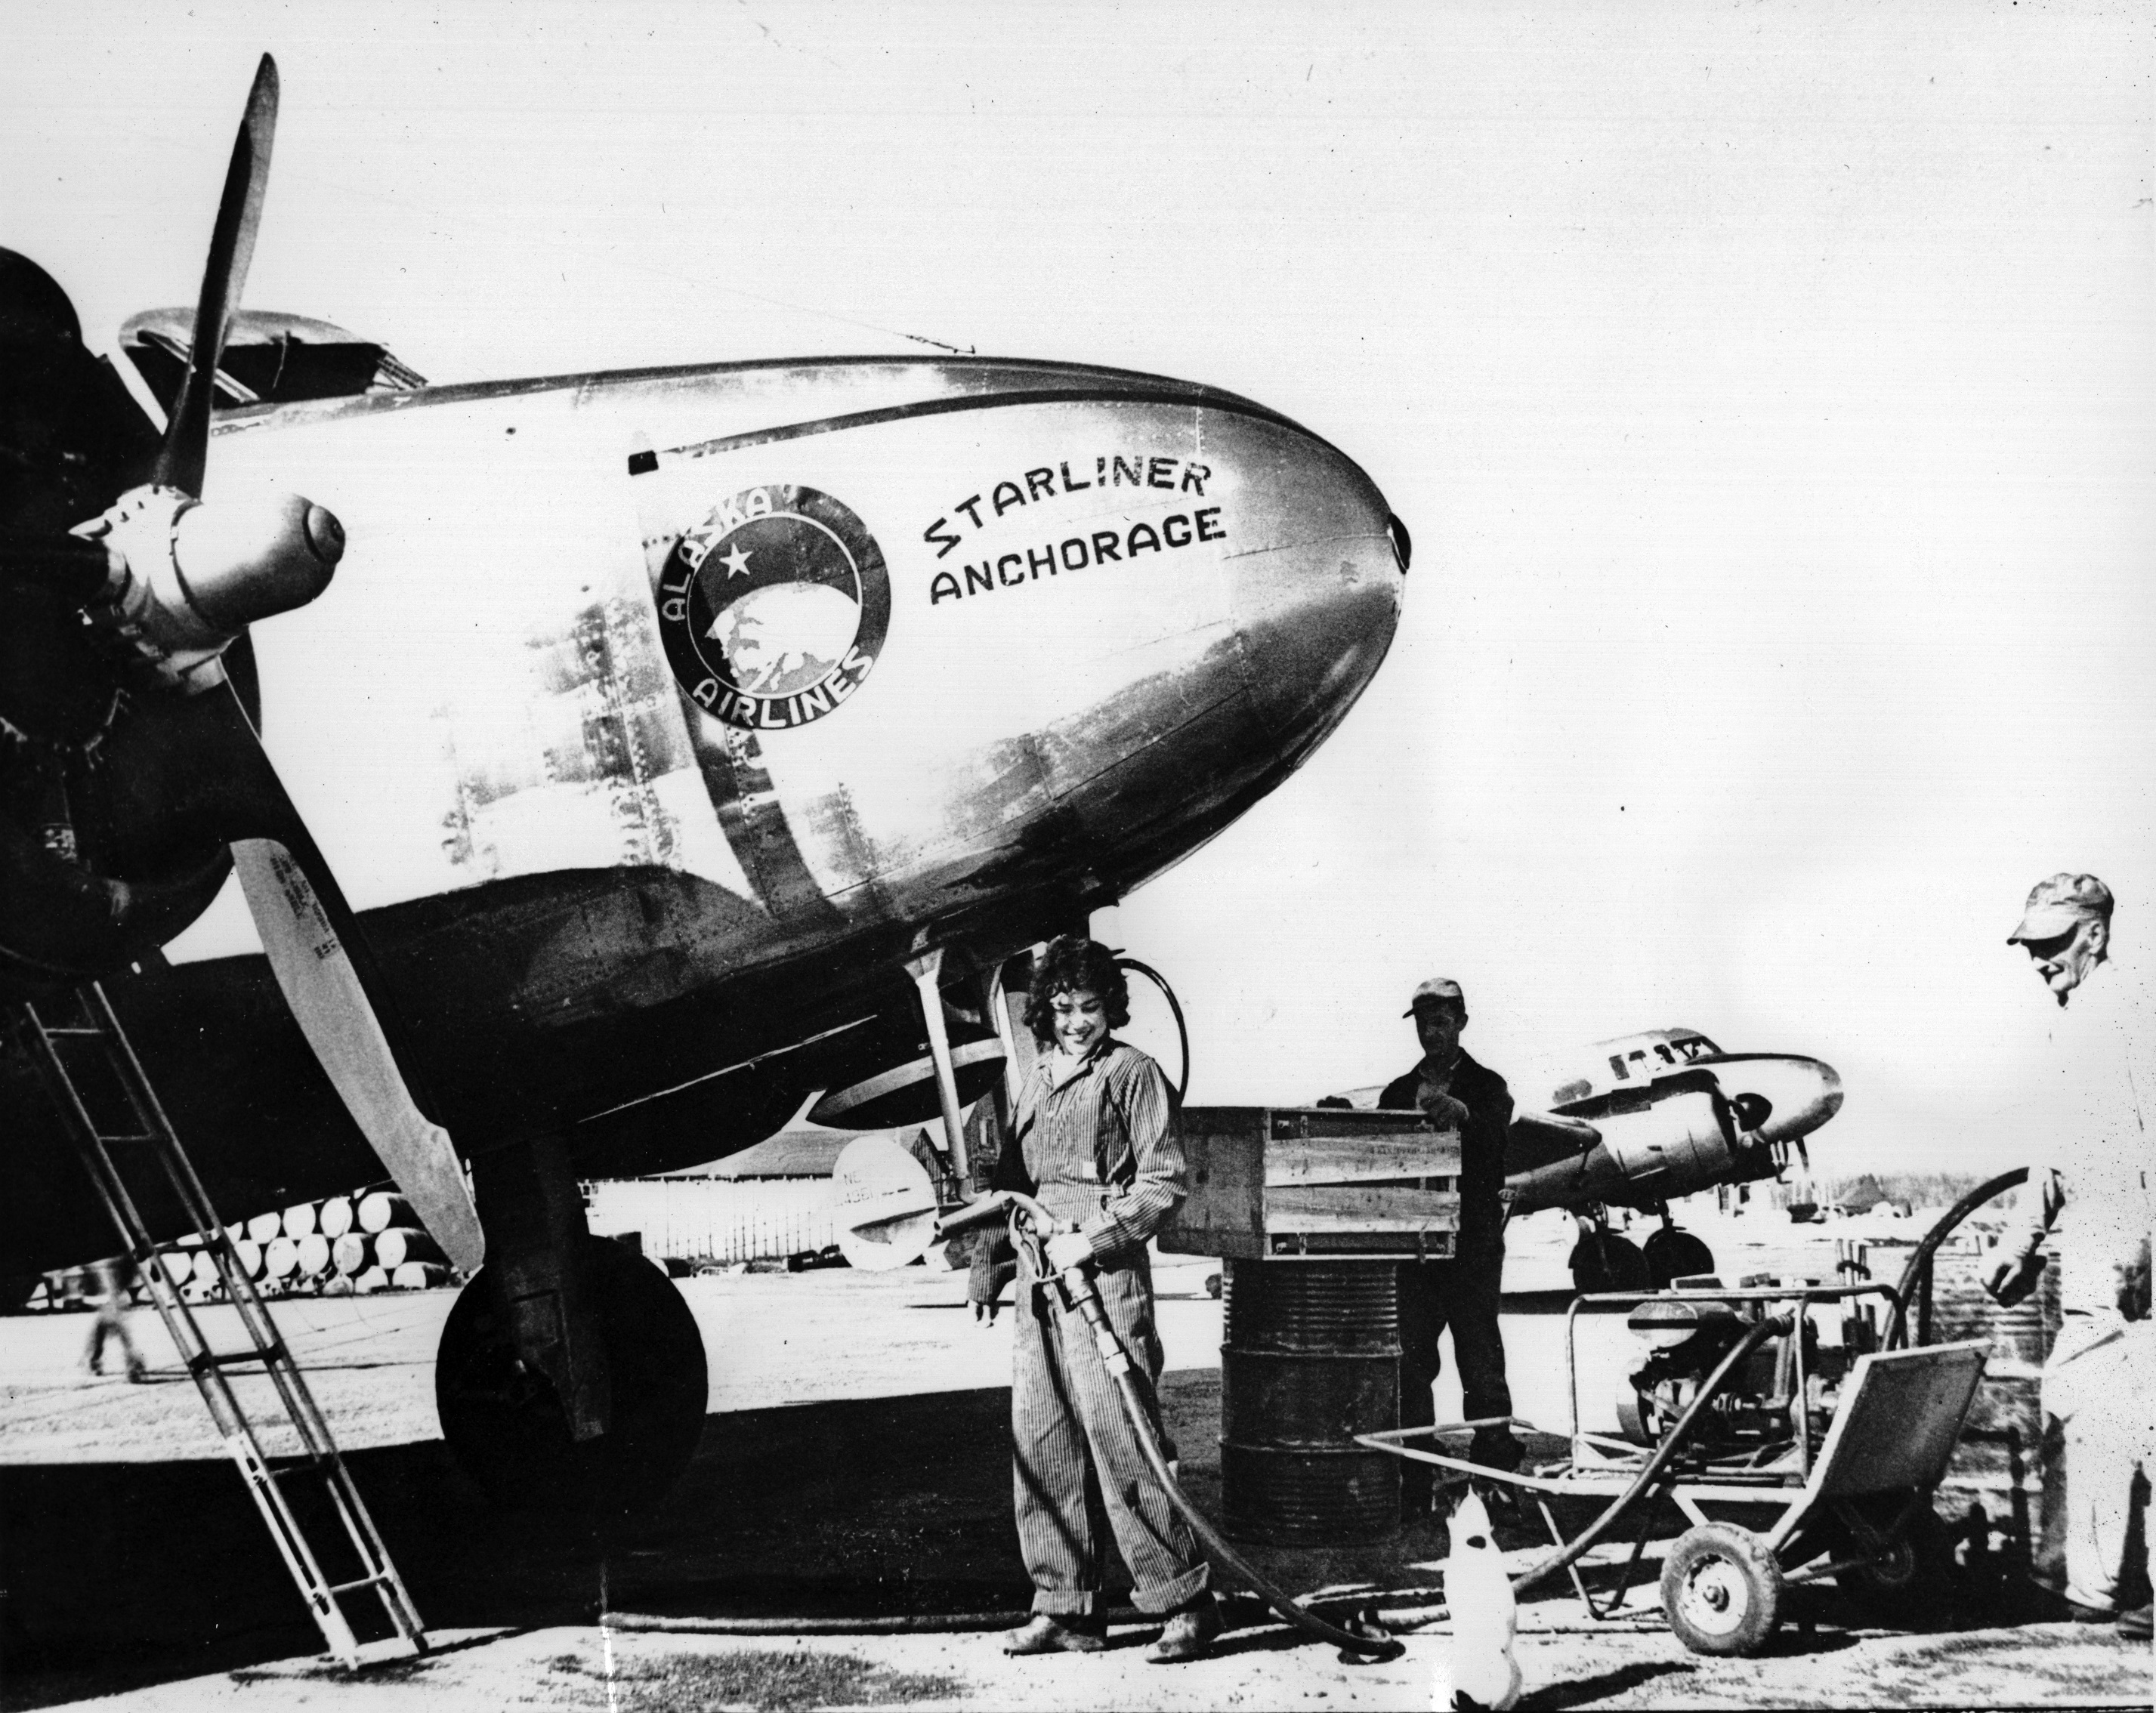 black and white photo of a young woman fueling a vintage airplane